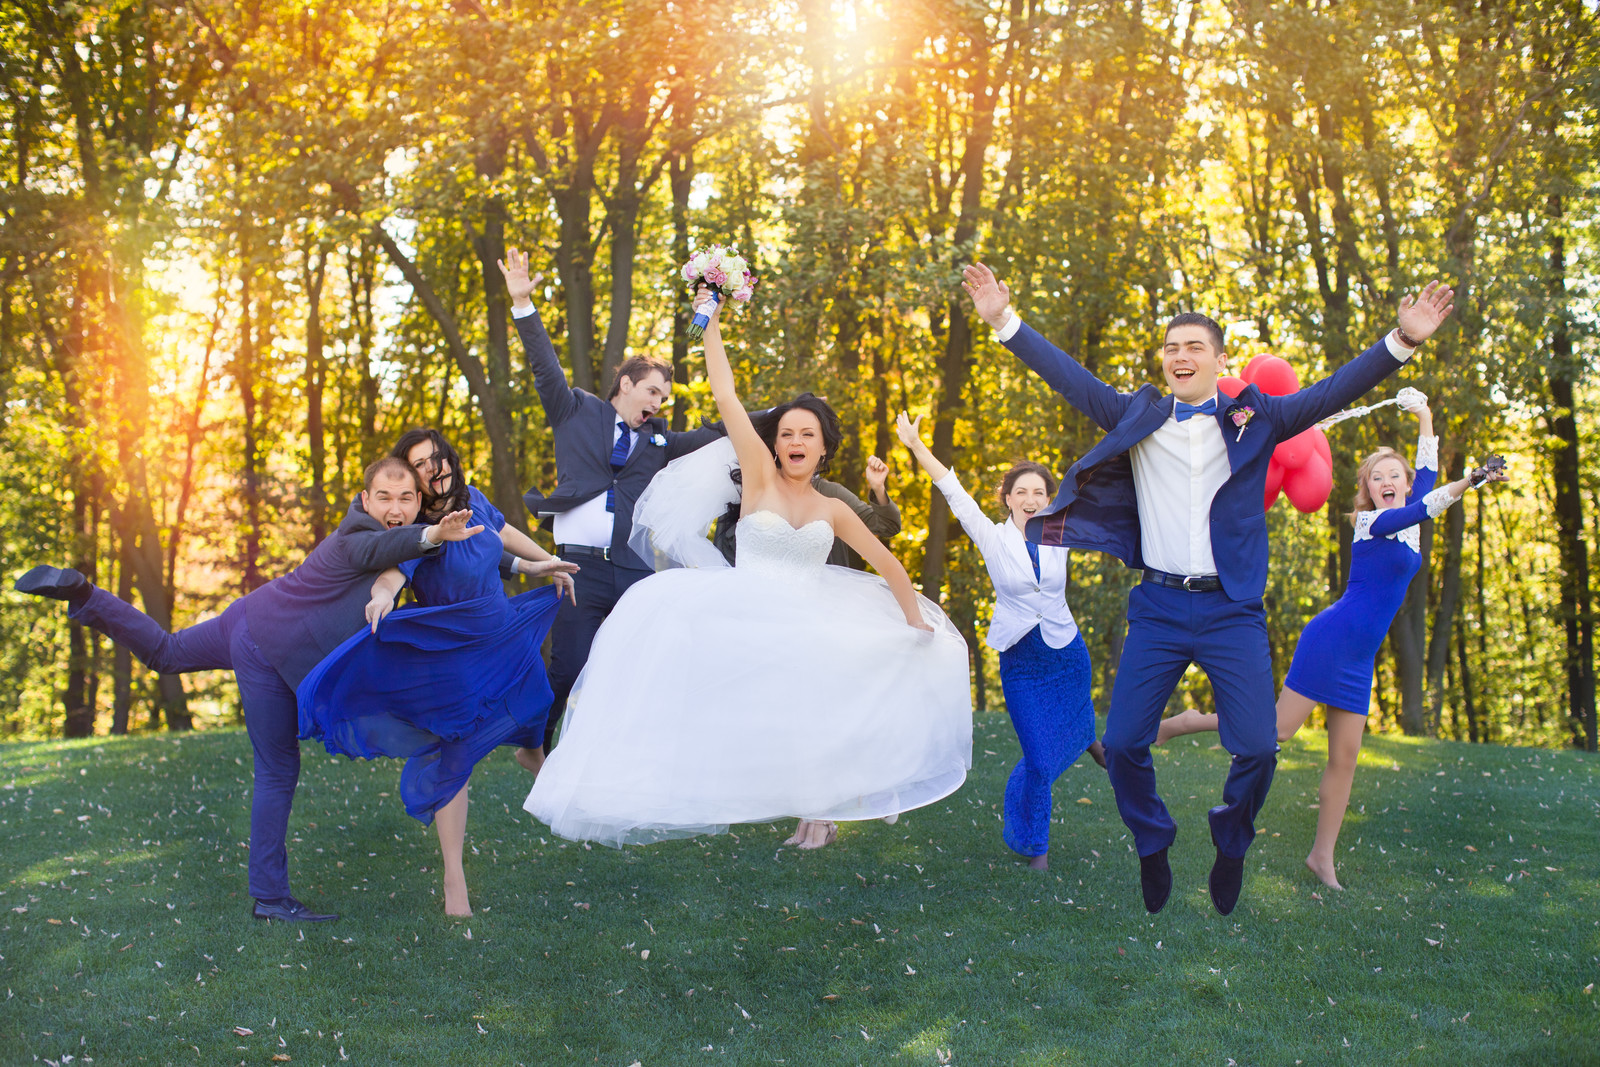 bride-and-groom-jump-for-joy-for-their-cheap-wedding-photographer